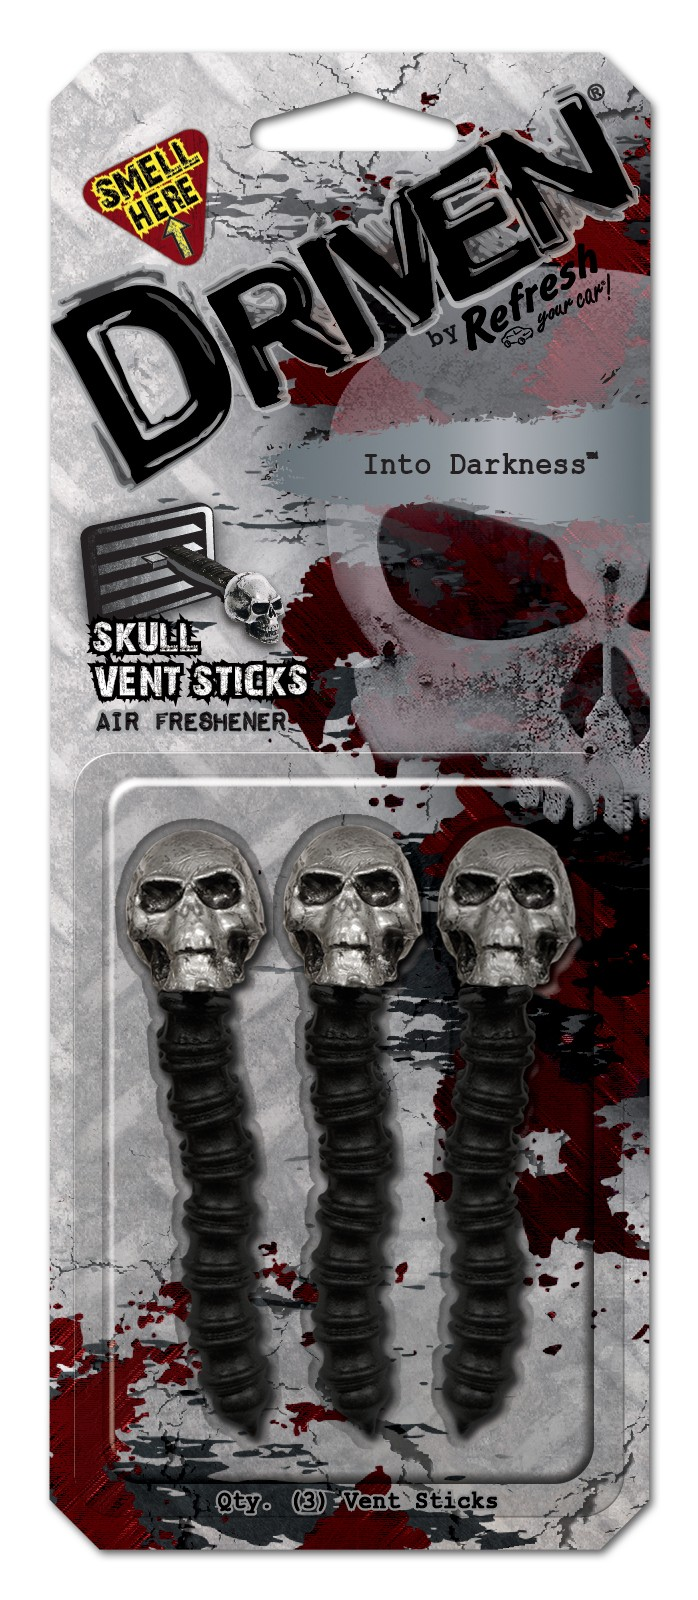 DRIVEN STICKS ASSAINISSEUR SKULL